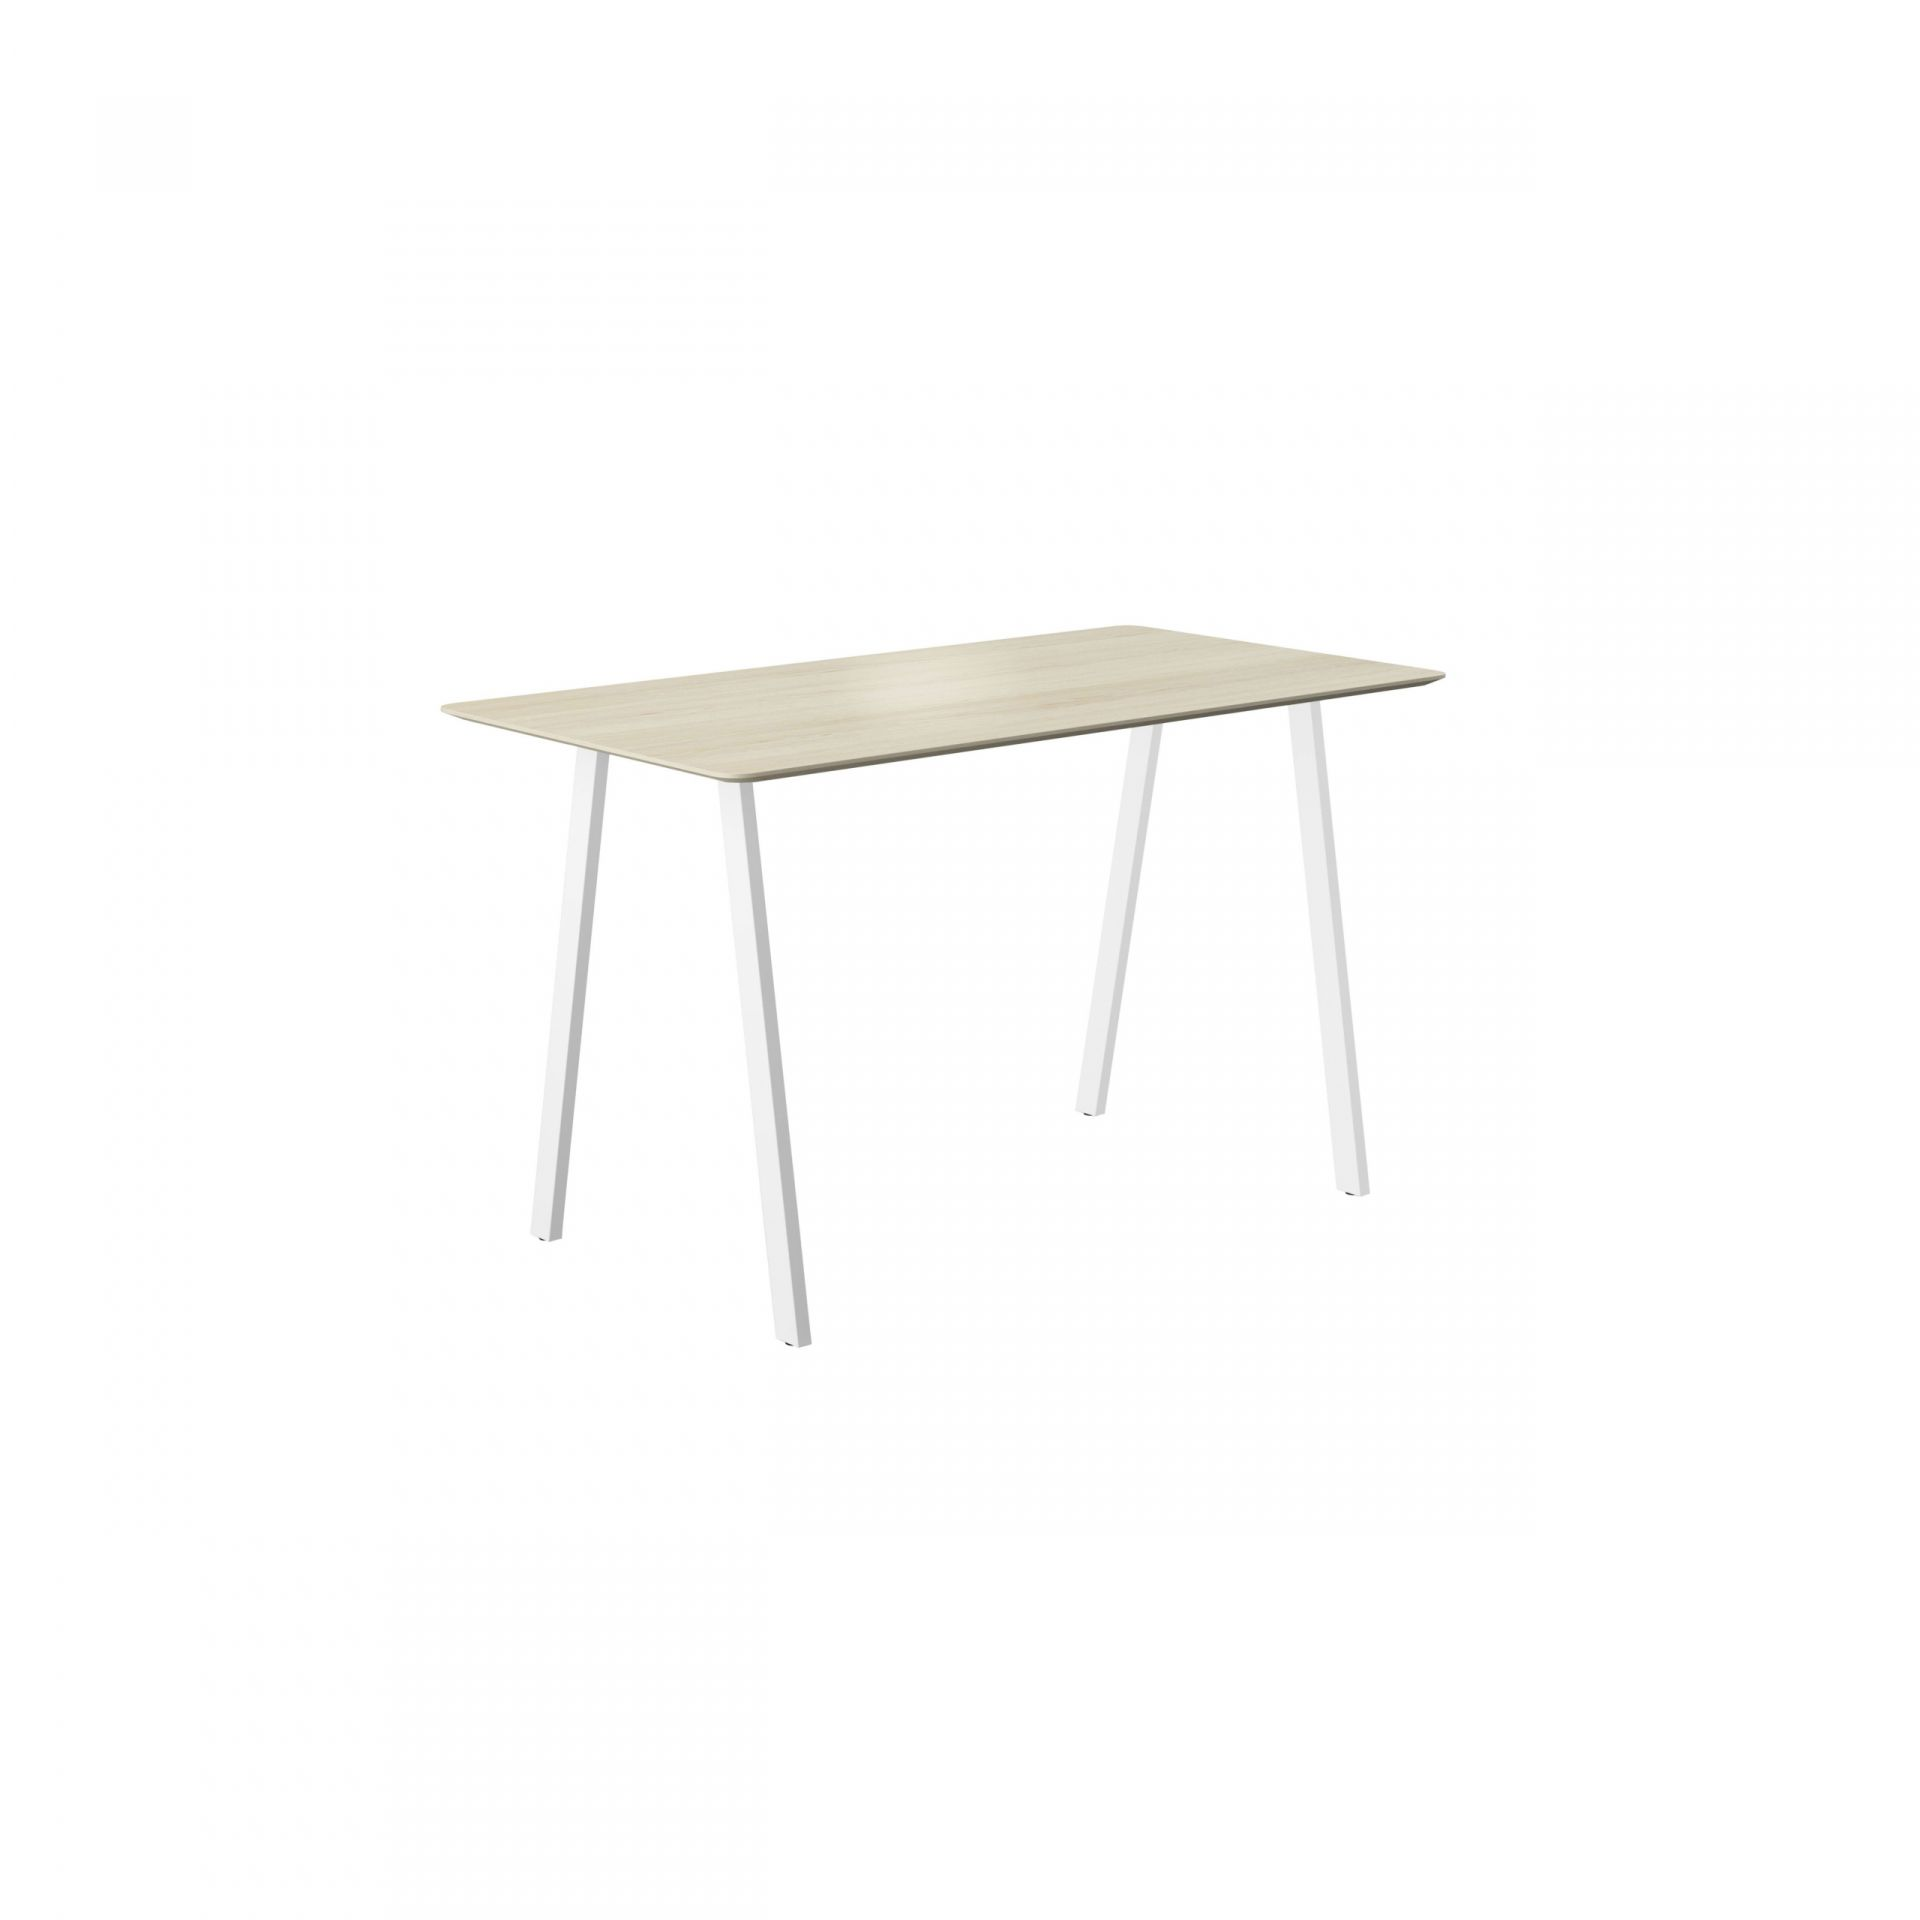 Collaborate Table with metal legs product image 3